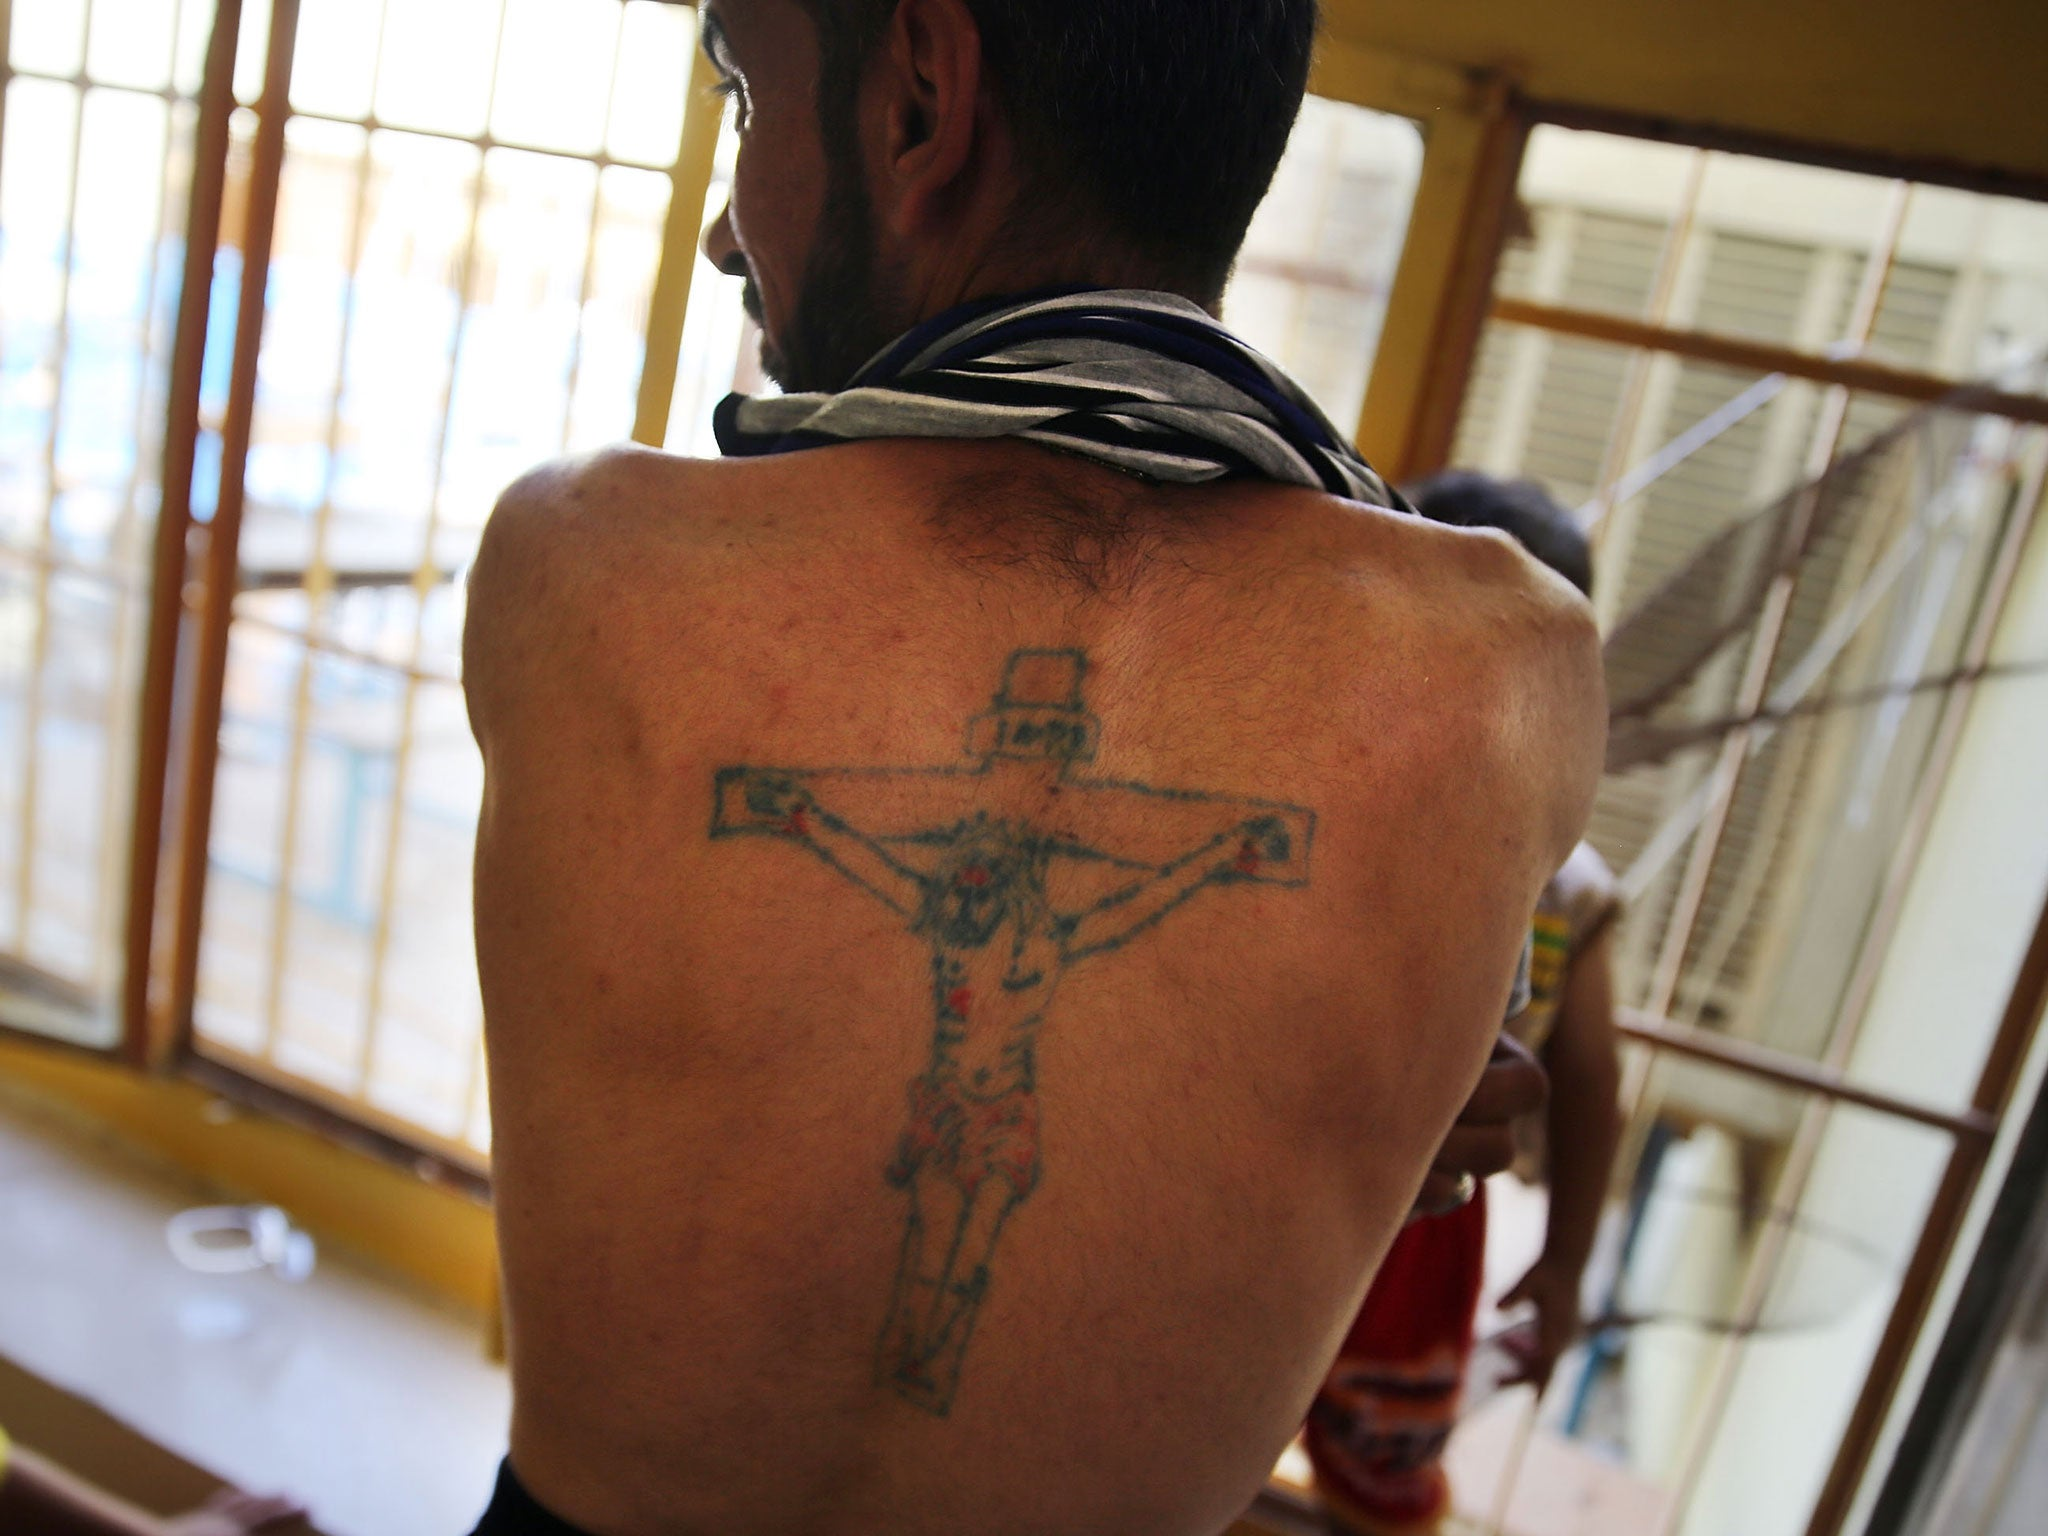 Iraq crisis: End 'very near' for Christianity after Isis takeover, says Vicar